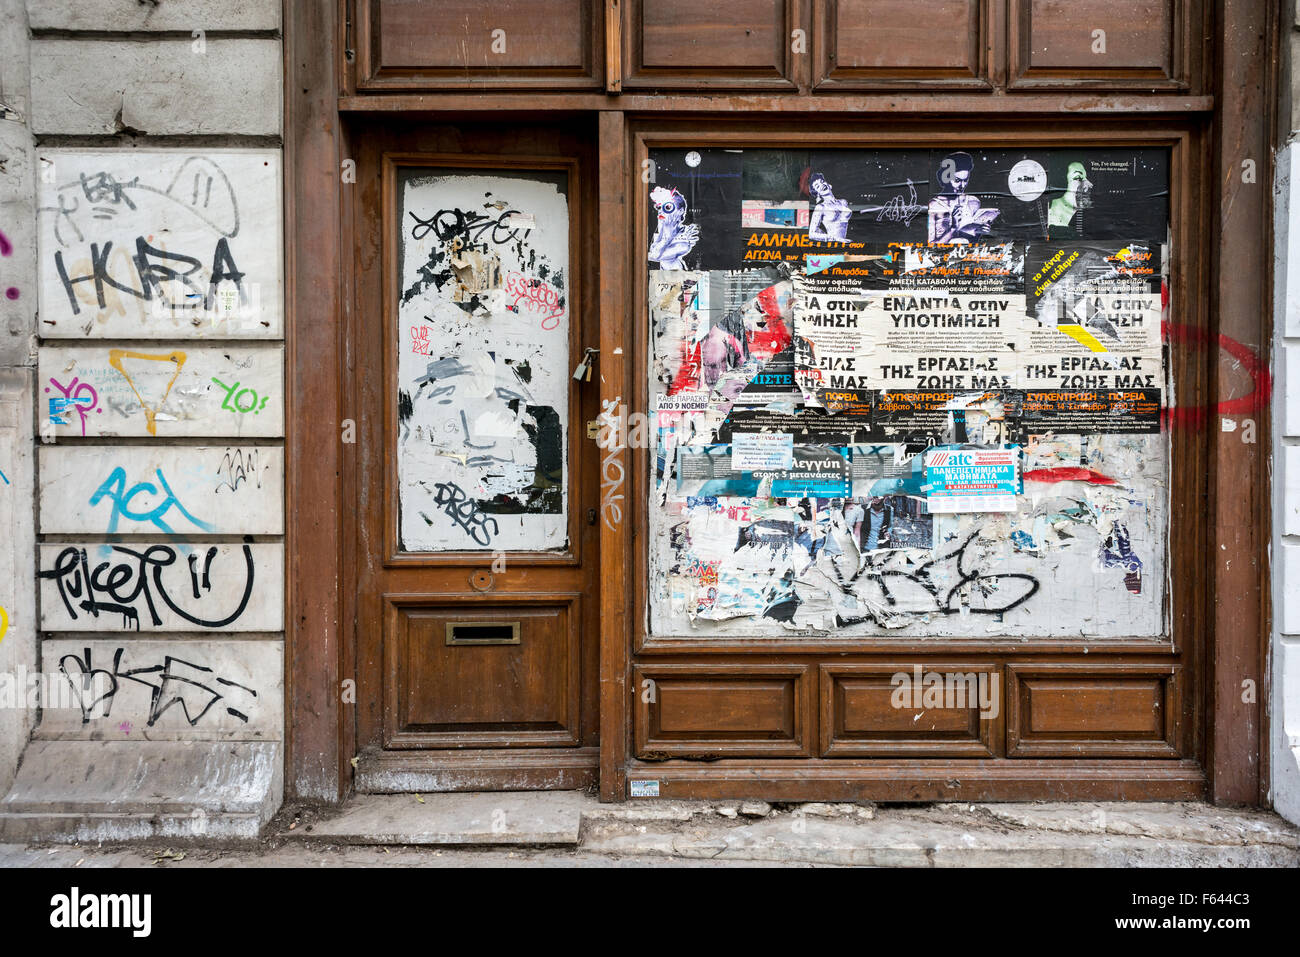 Graffiti in Athens, Greece. - Stock Image